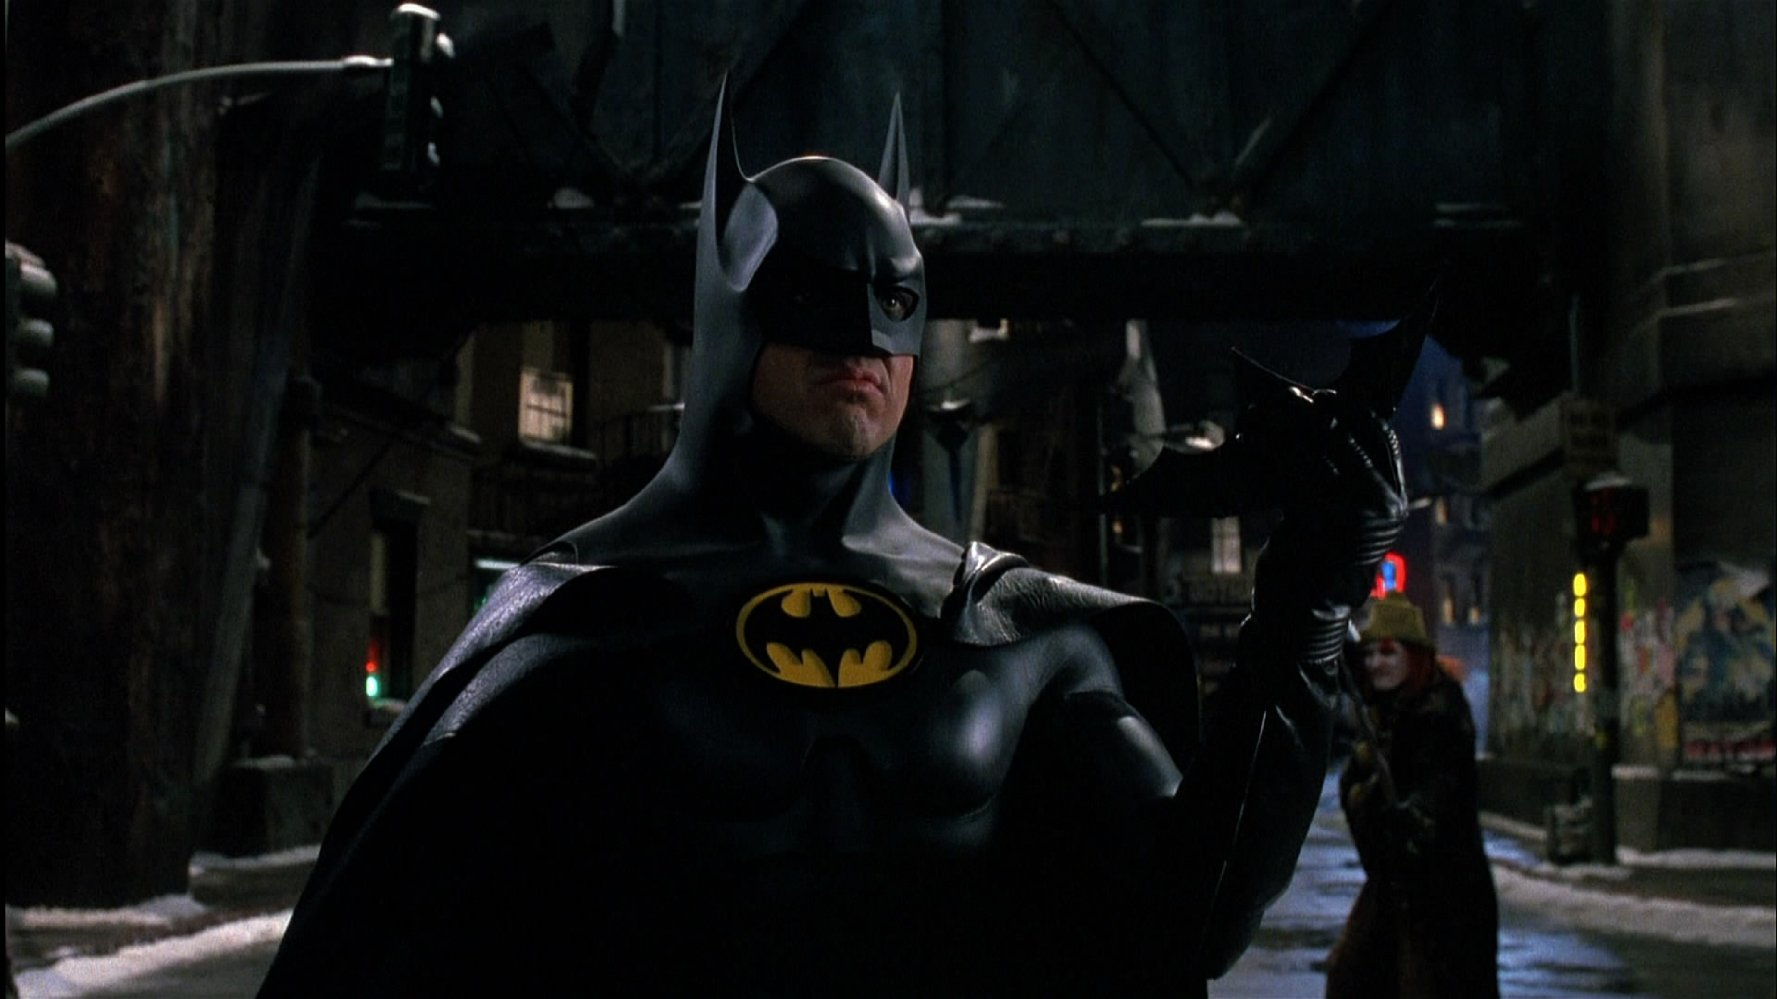 Spoiled Rotten 107: Revisiting Batman Returns